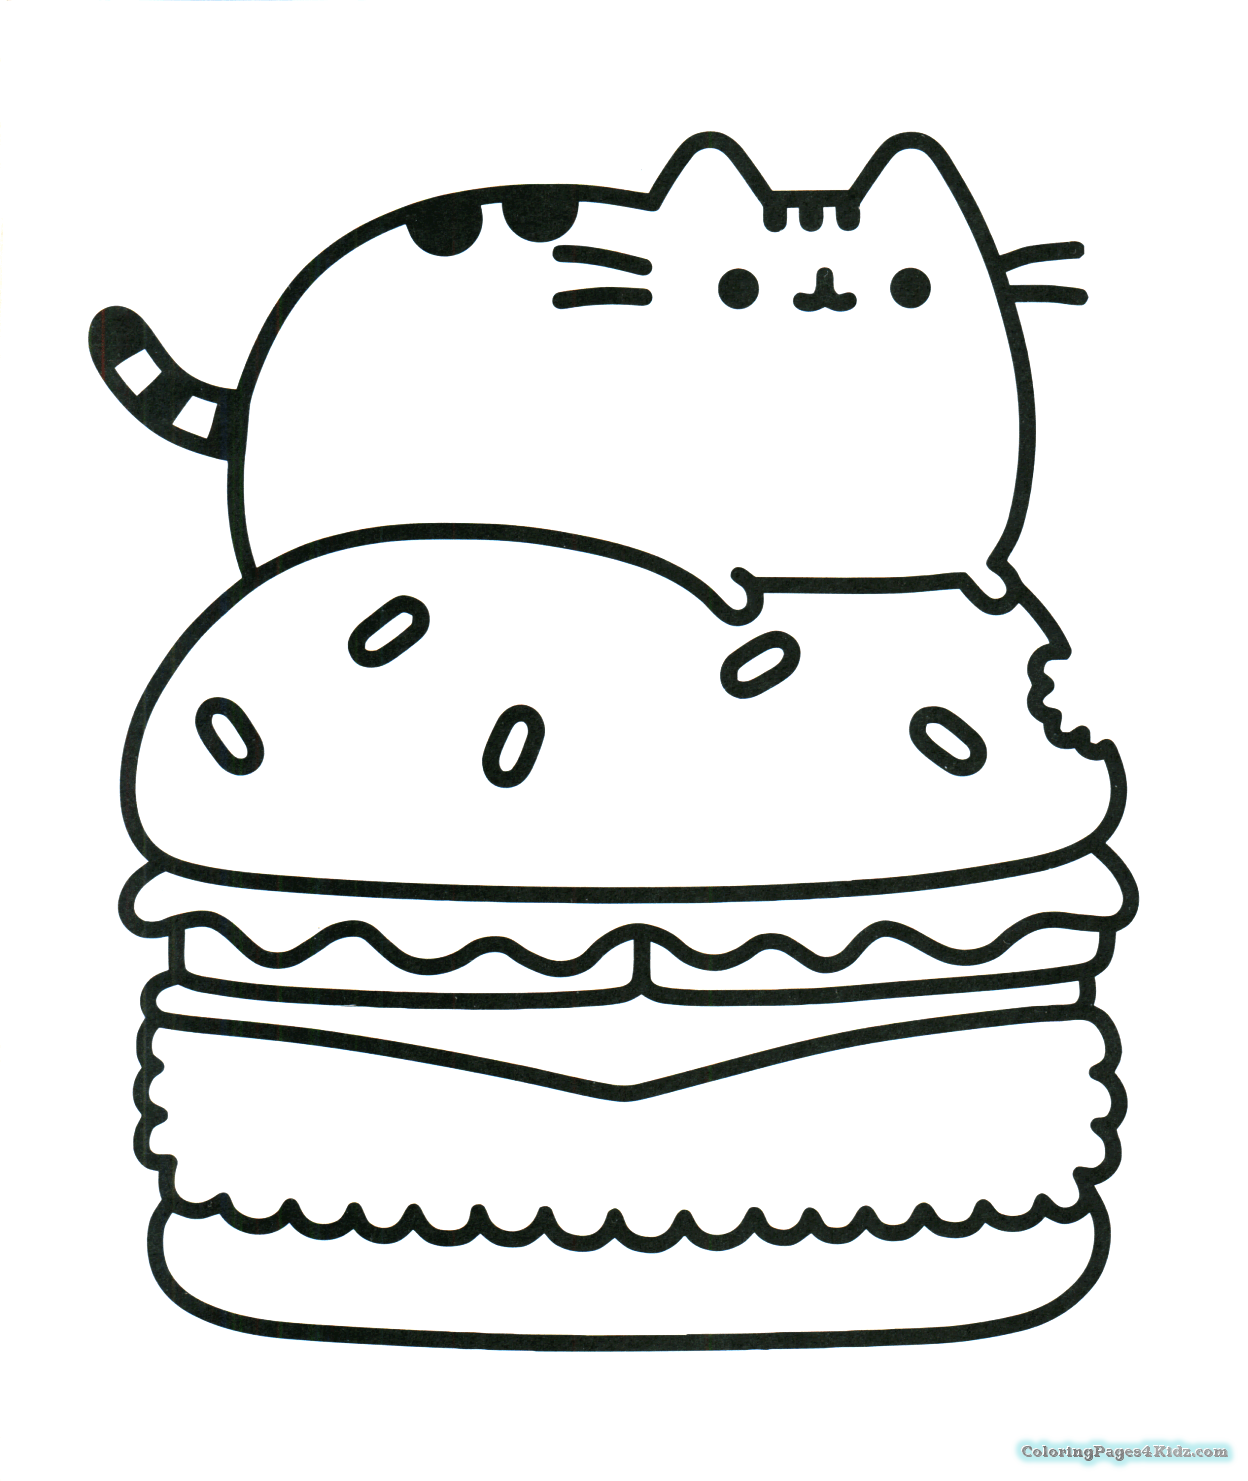 Pusheen Cat Colouring Pages